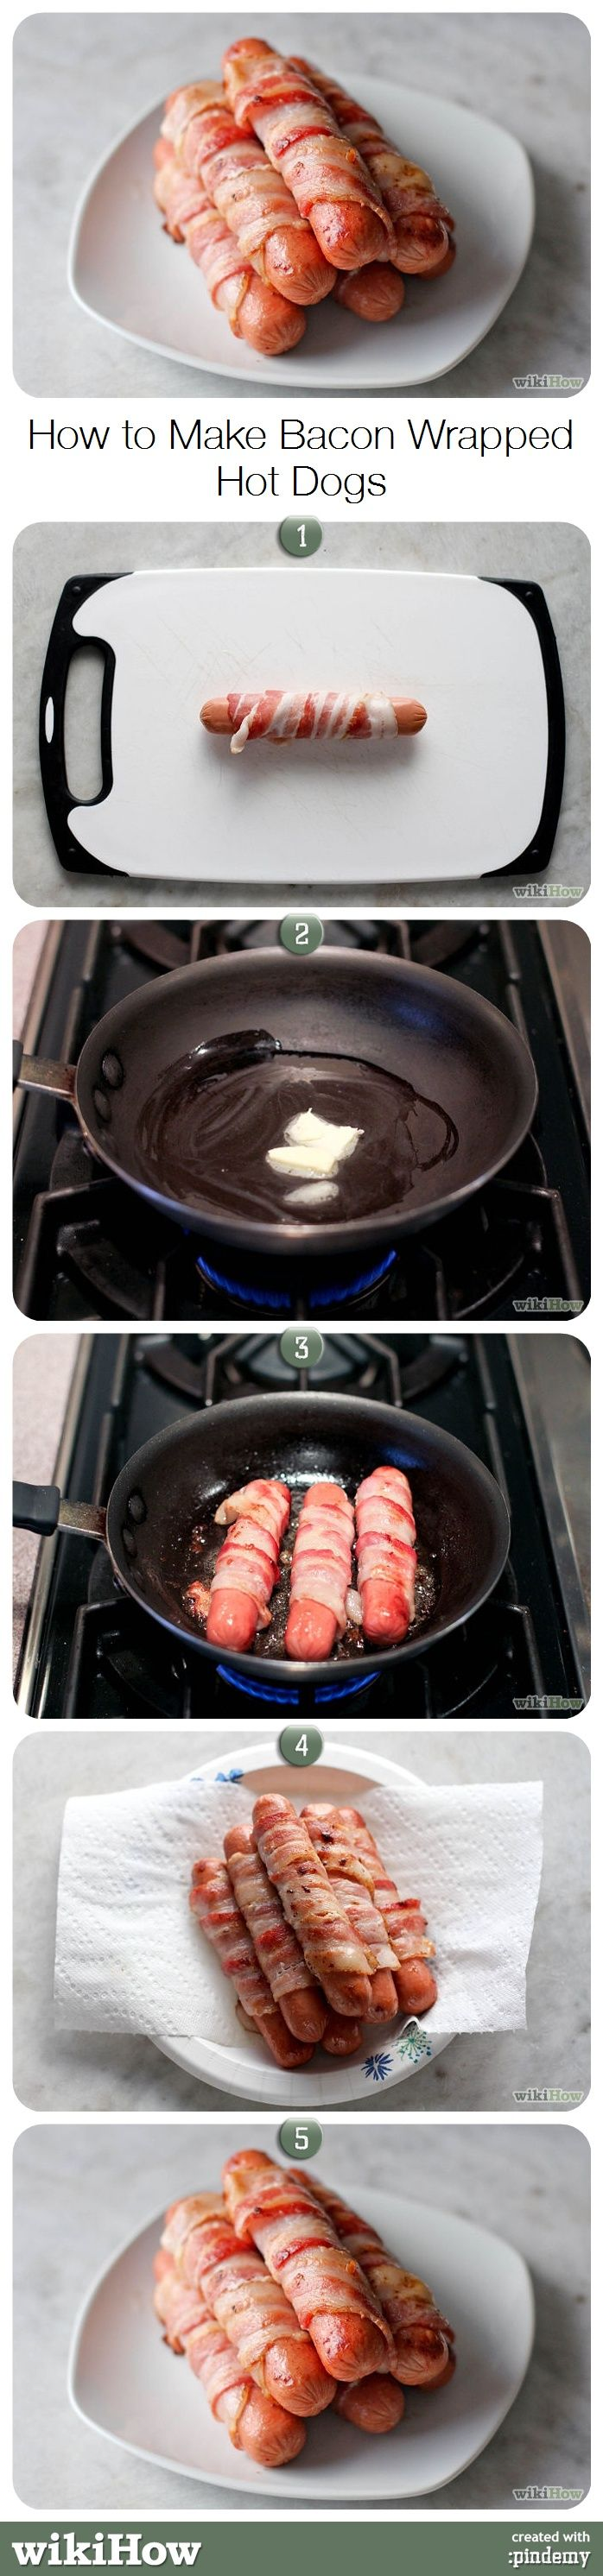 How to Make Bacon Wrapped Hot Dogs